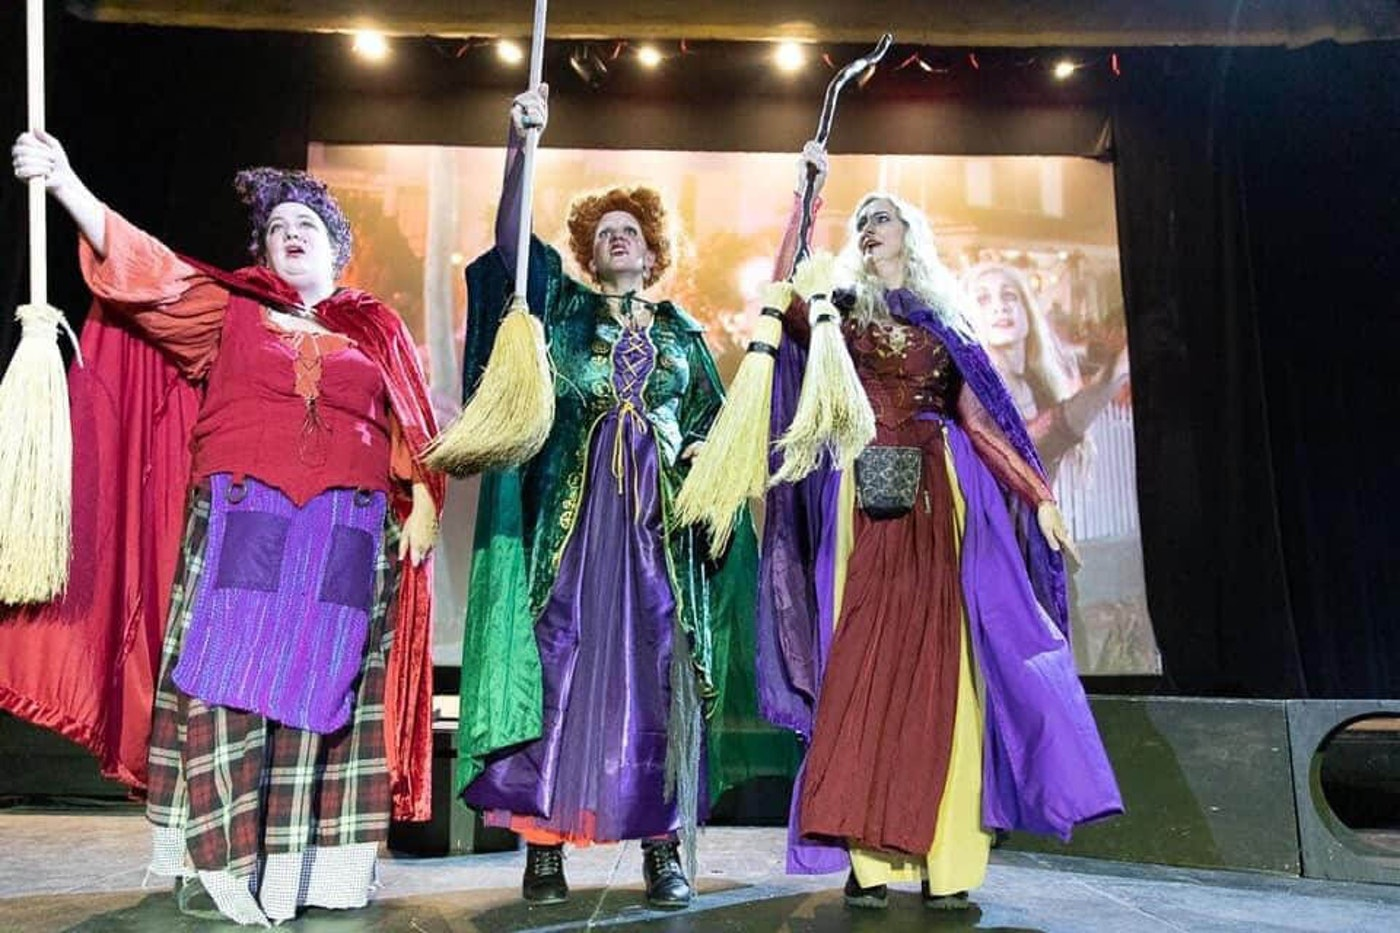 Tessa Betts (L), Kristina Lakey, and Ahlissa Vaubel as Mary, Winifred, and Sarah Sanderson respectively during a Hocus Pocus shadowcast. (Photo courtesy of Kristina Lakey)